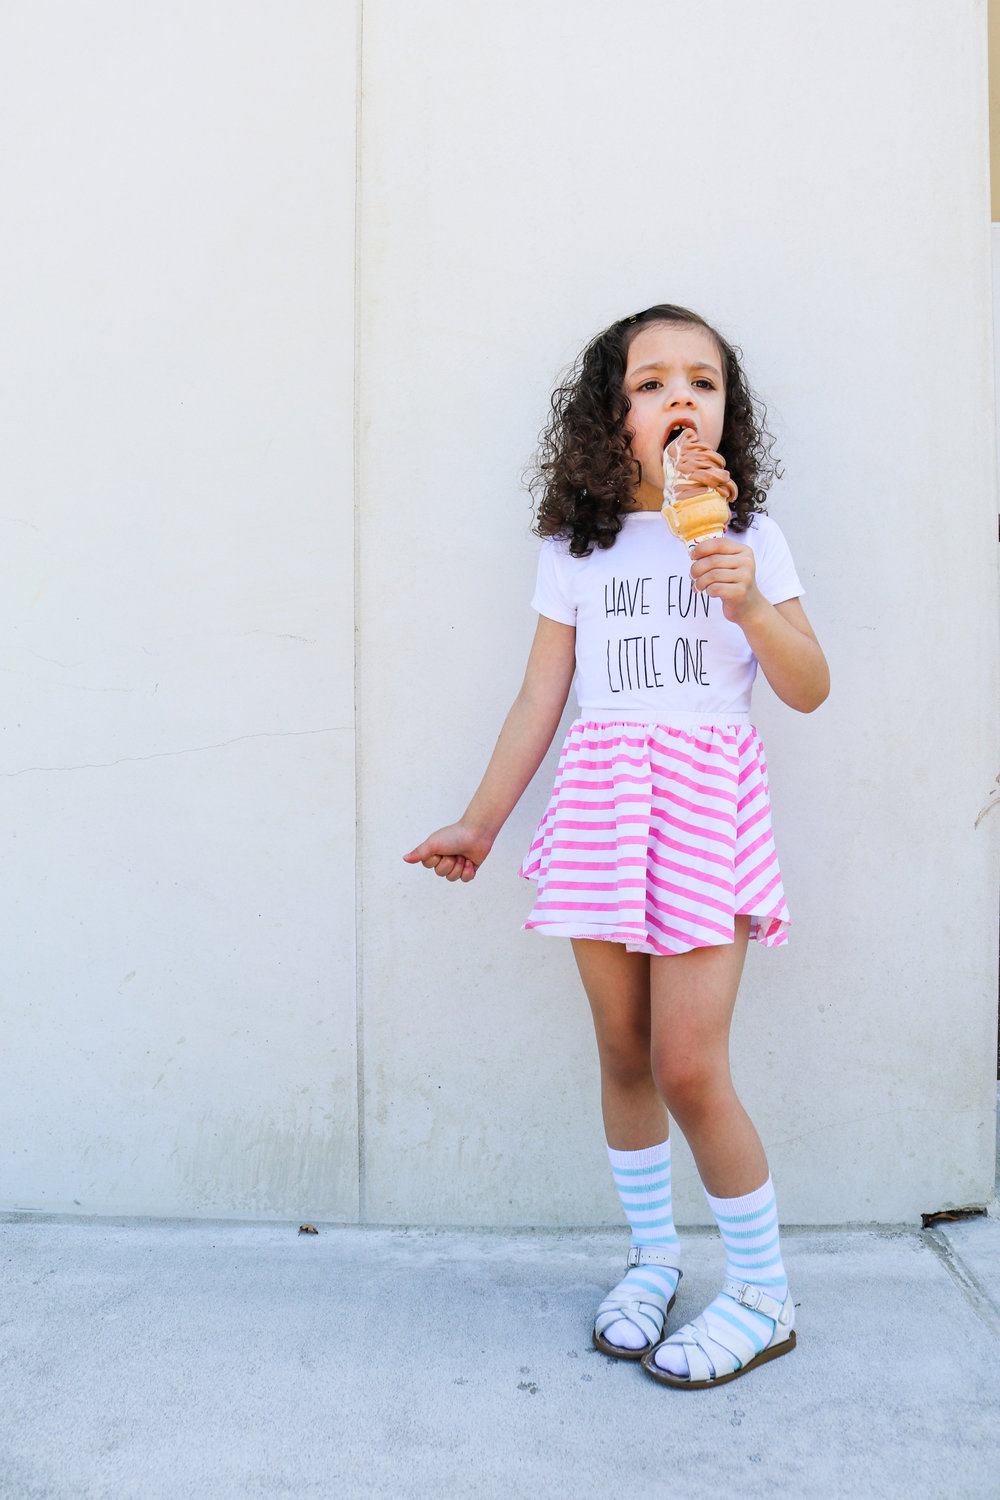 Shirt:   Mila James   Skirt/Socks:   June and January   Ice Cream: Super Duper (hahaha)